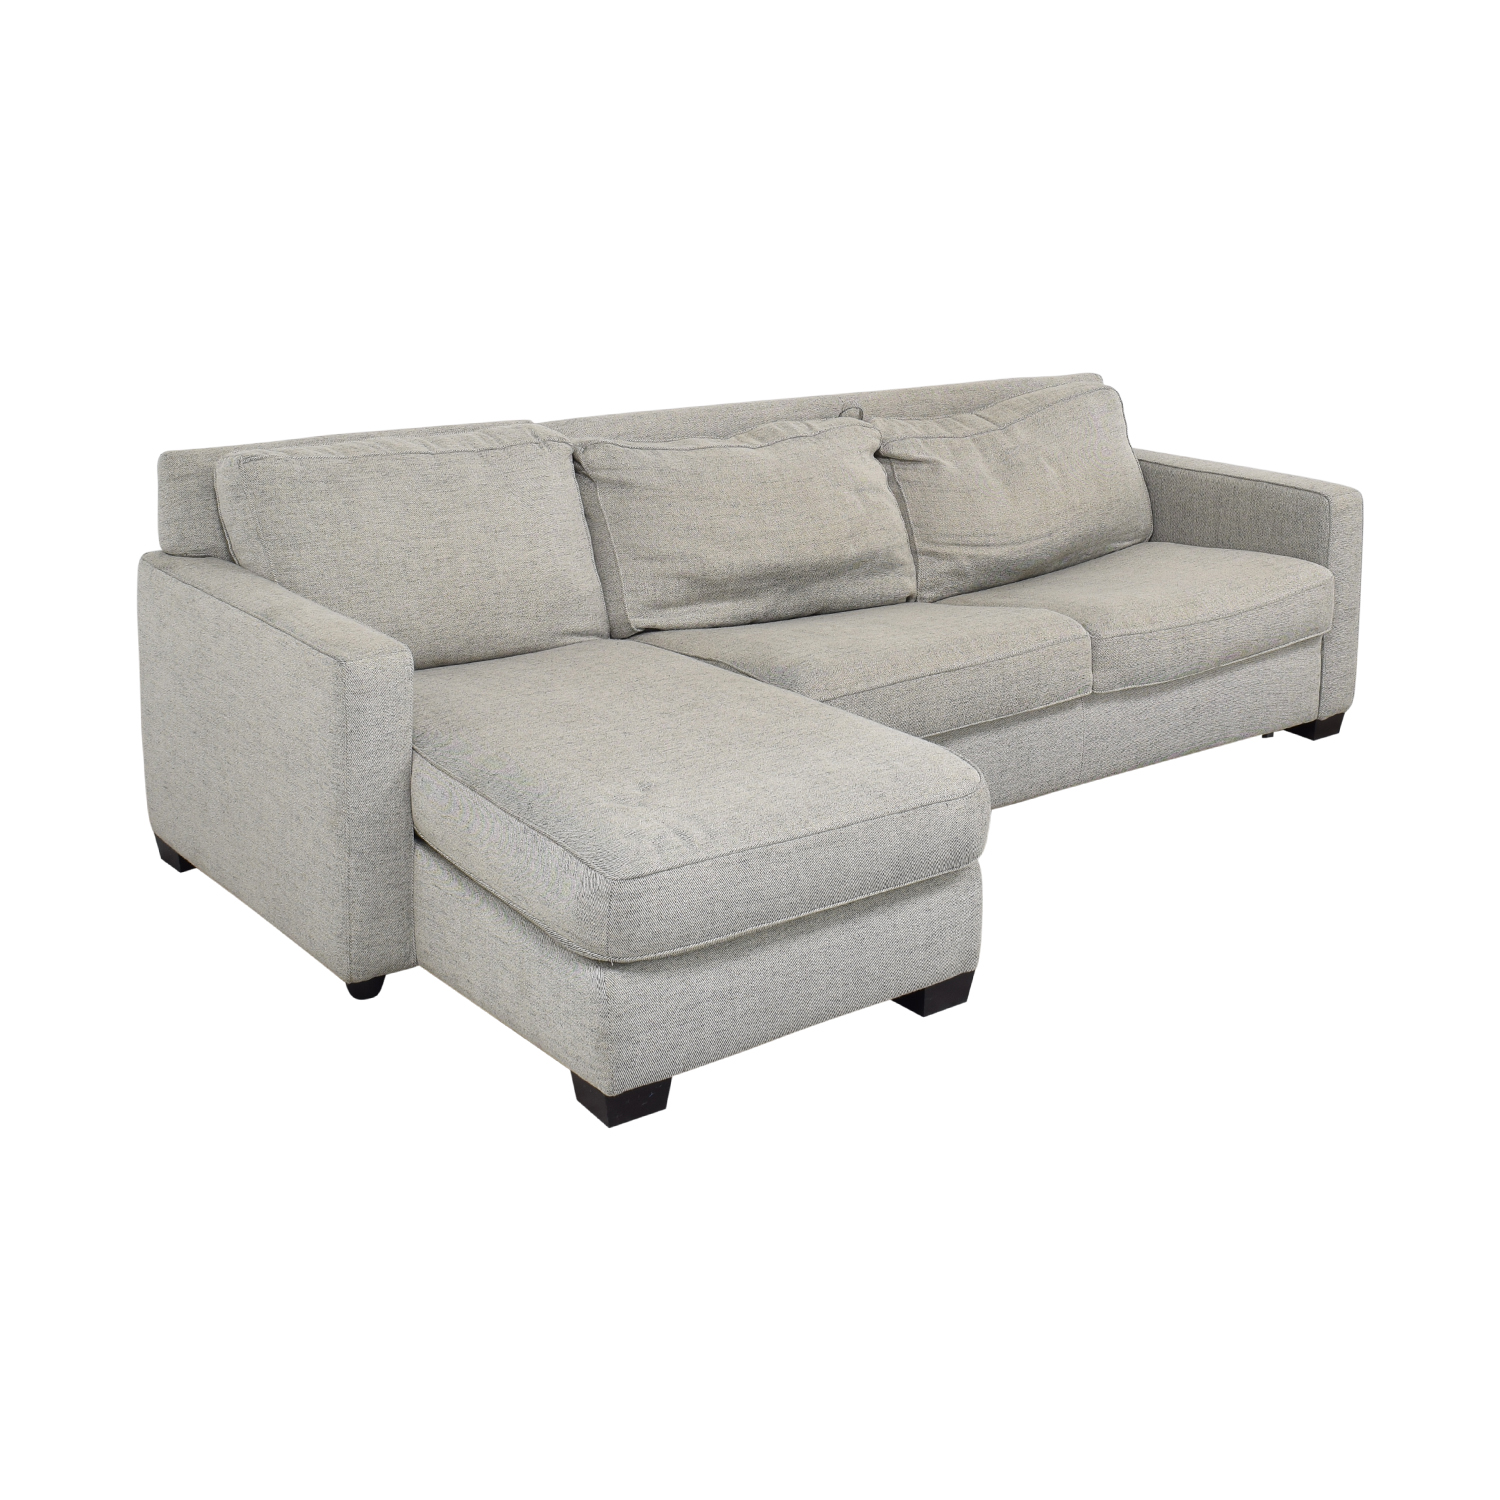 West Elm West Elm Henry 2-Piece Full Sleeper Sectional with Storage discount